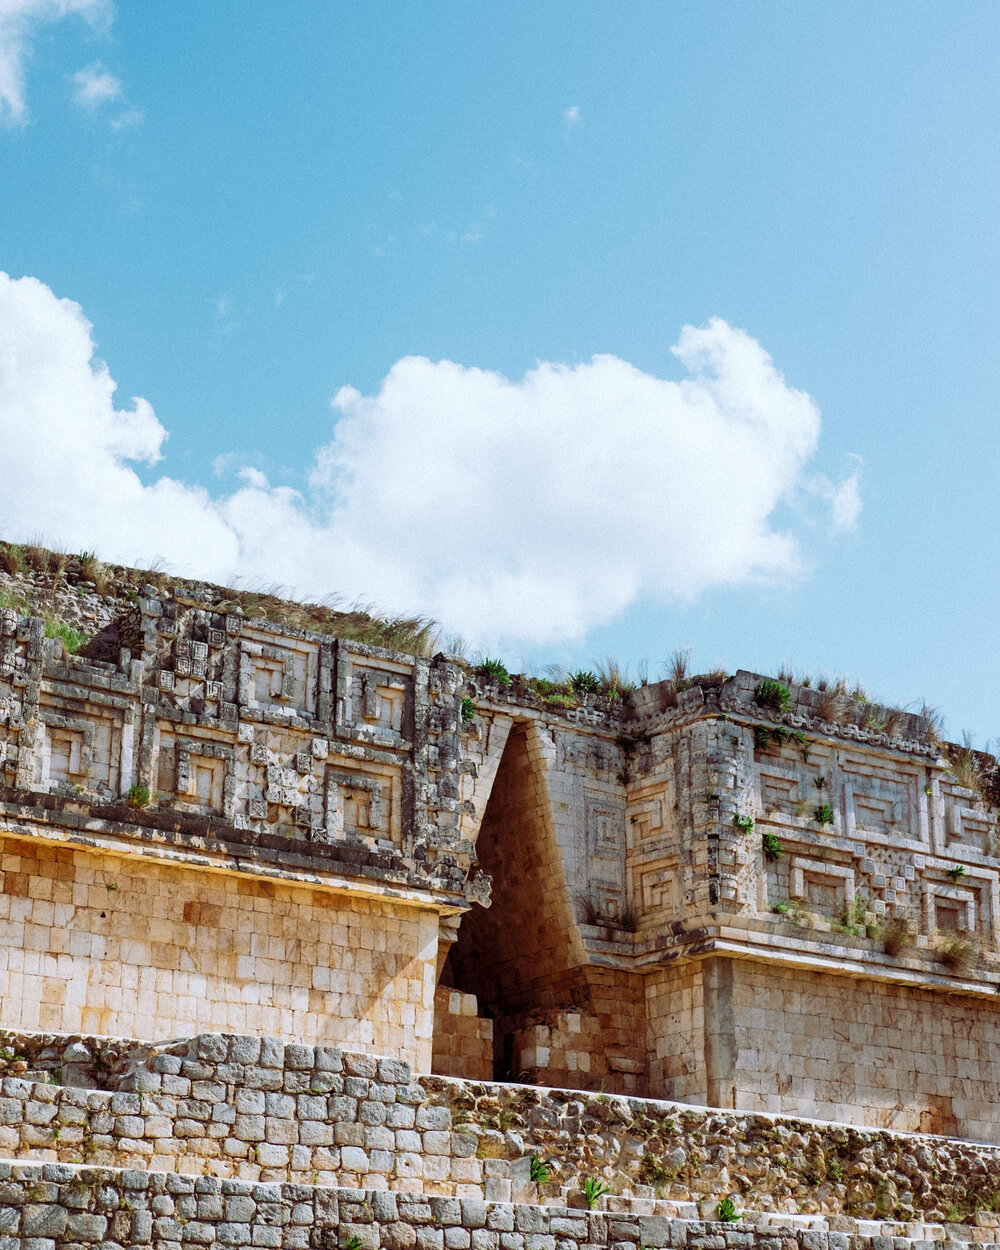 Rachel Off Duty: The Intricate Ruins at Uxmal, Mexico